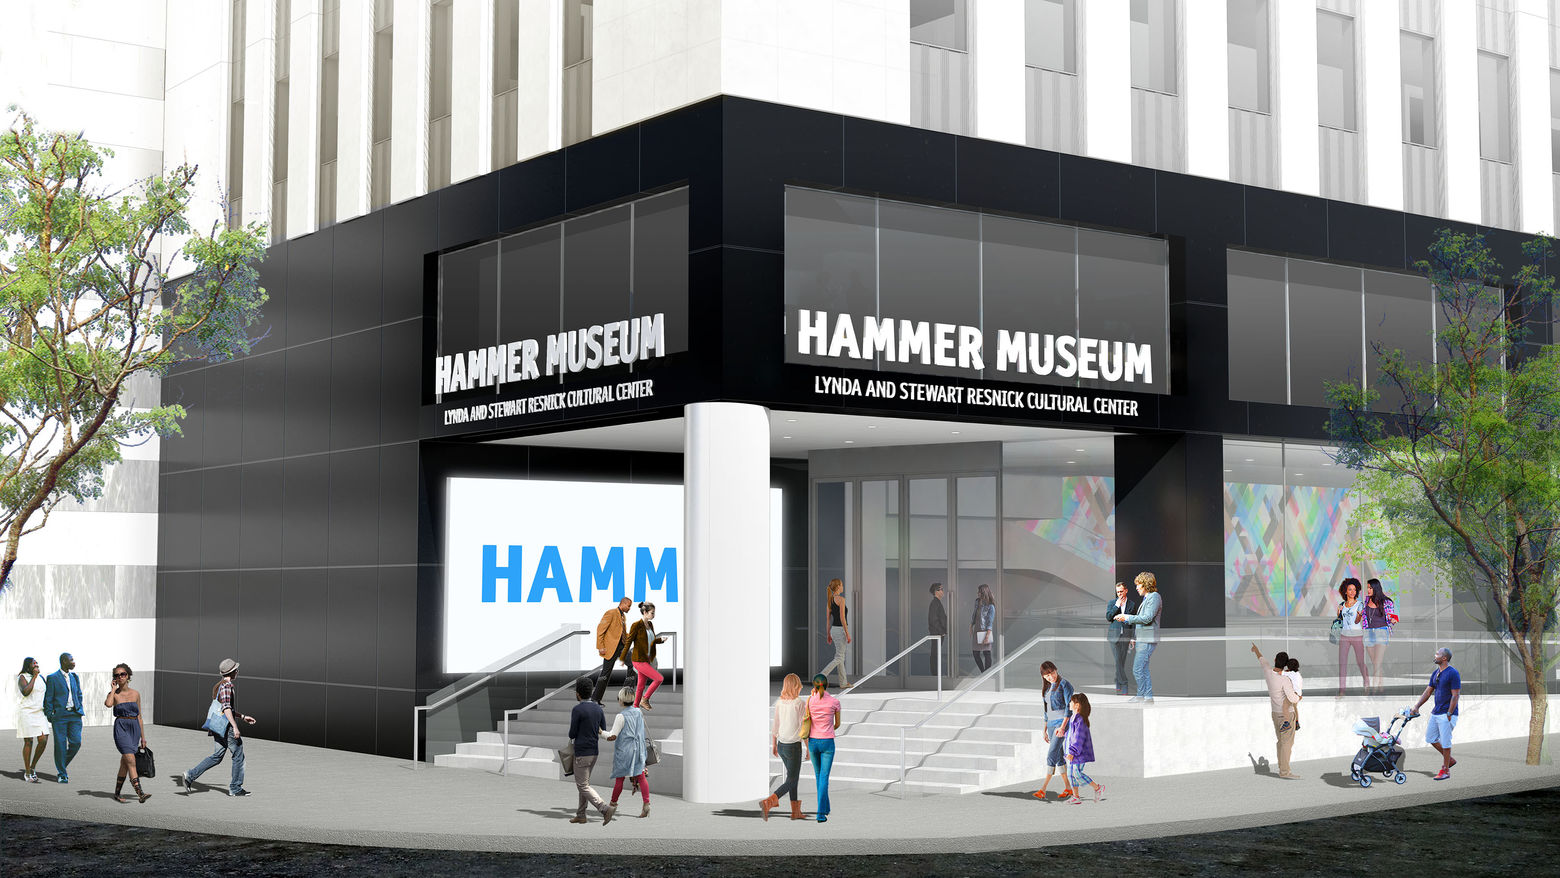 Rendering of the Hammer corner entrance  - the view from the street shows a black corner with stairs leading into the building.